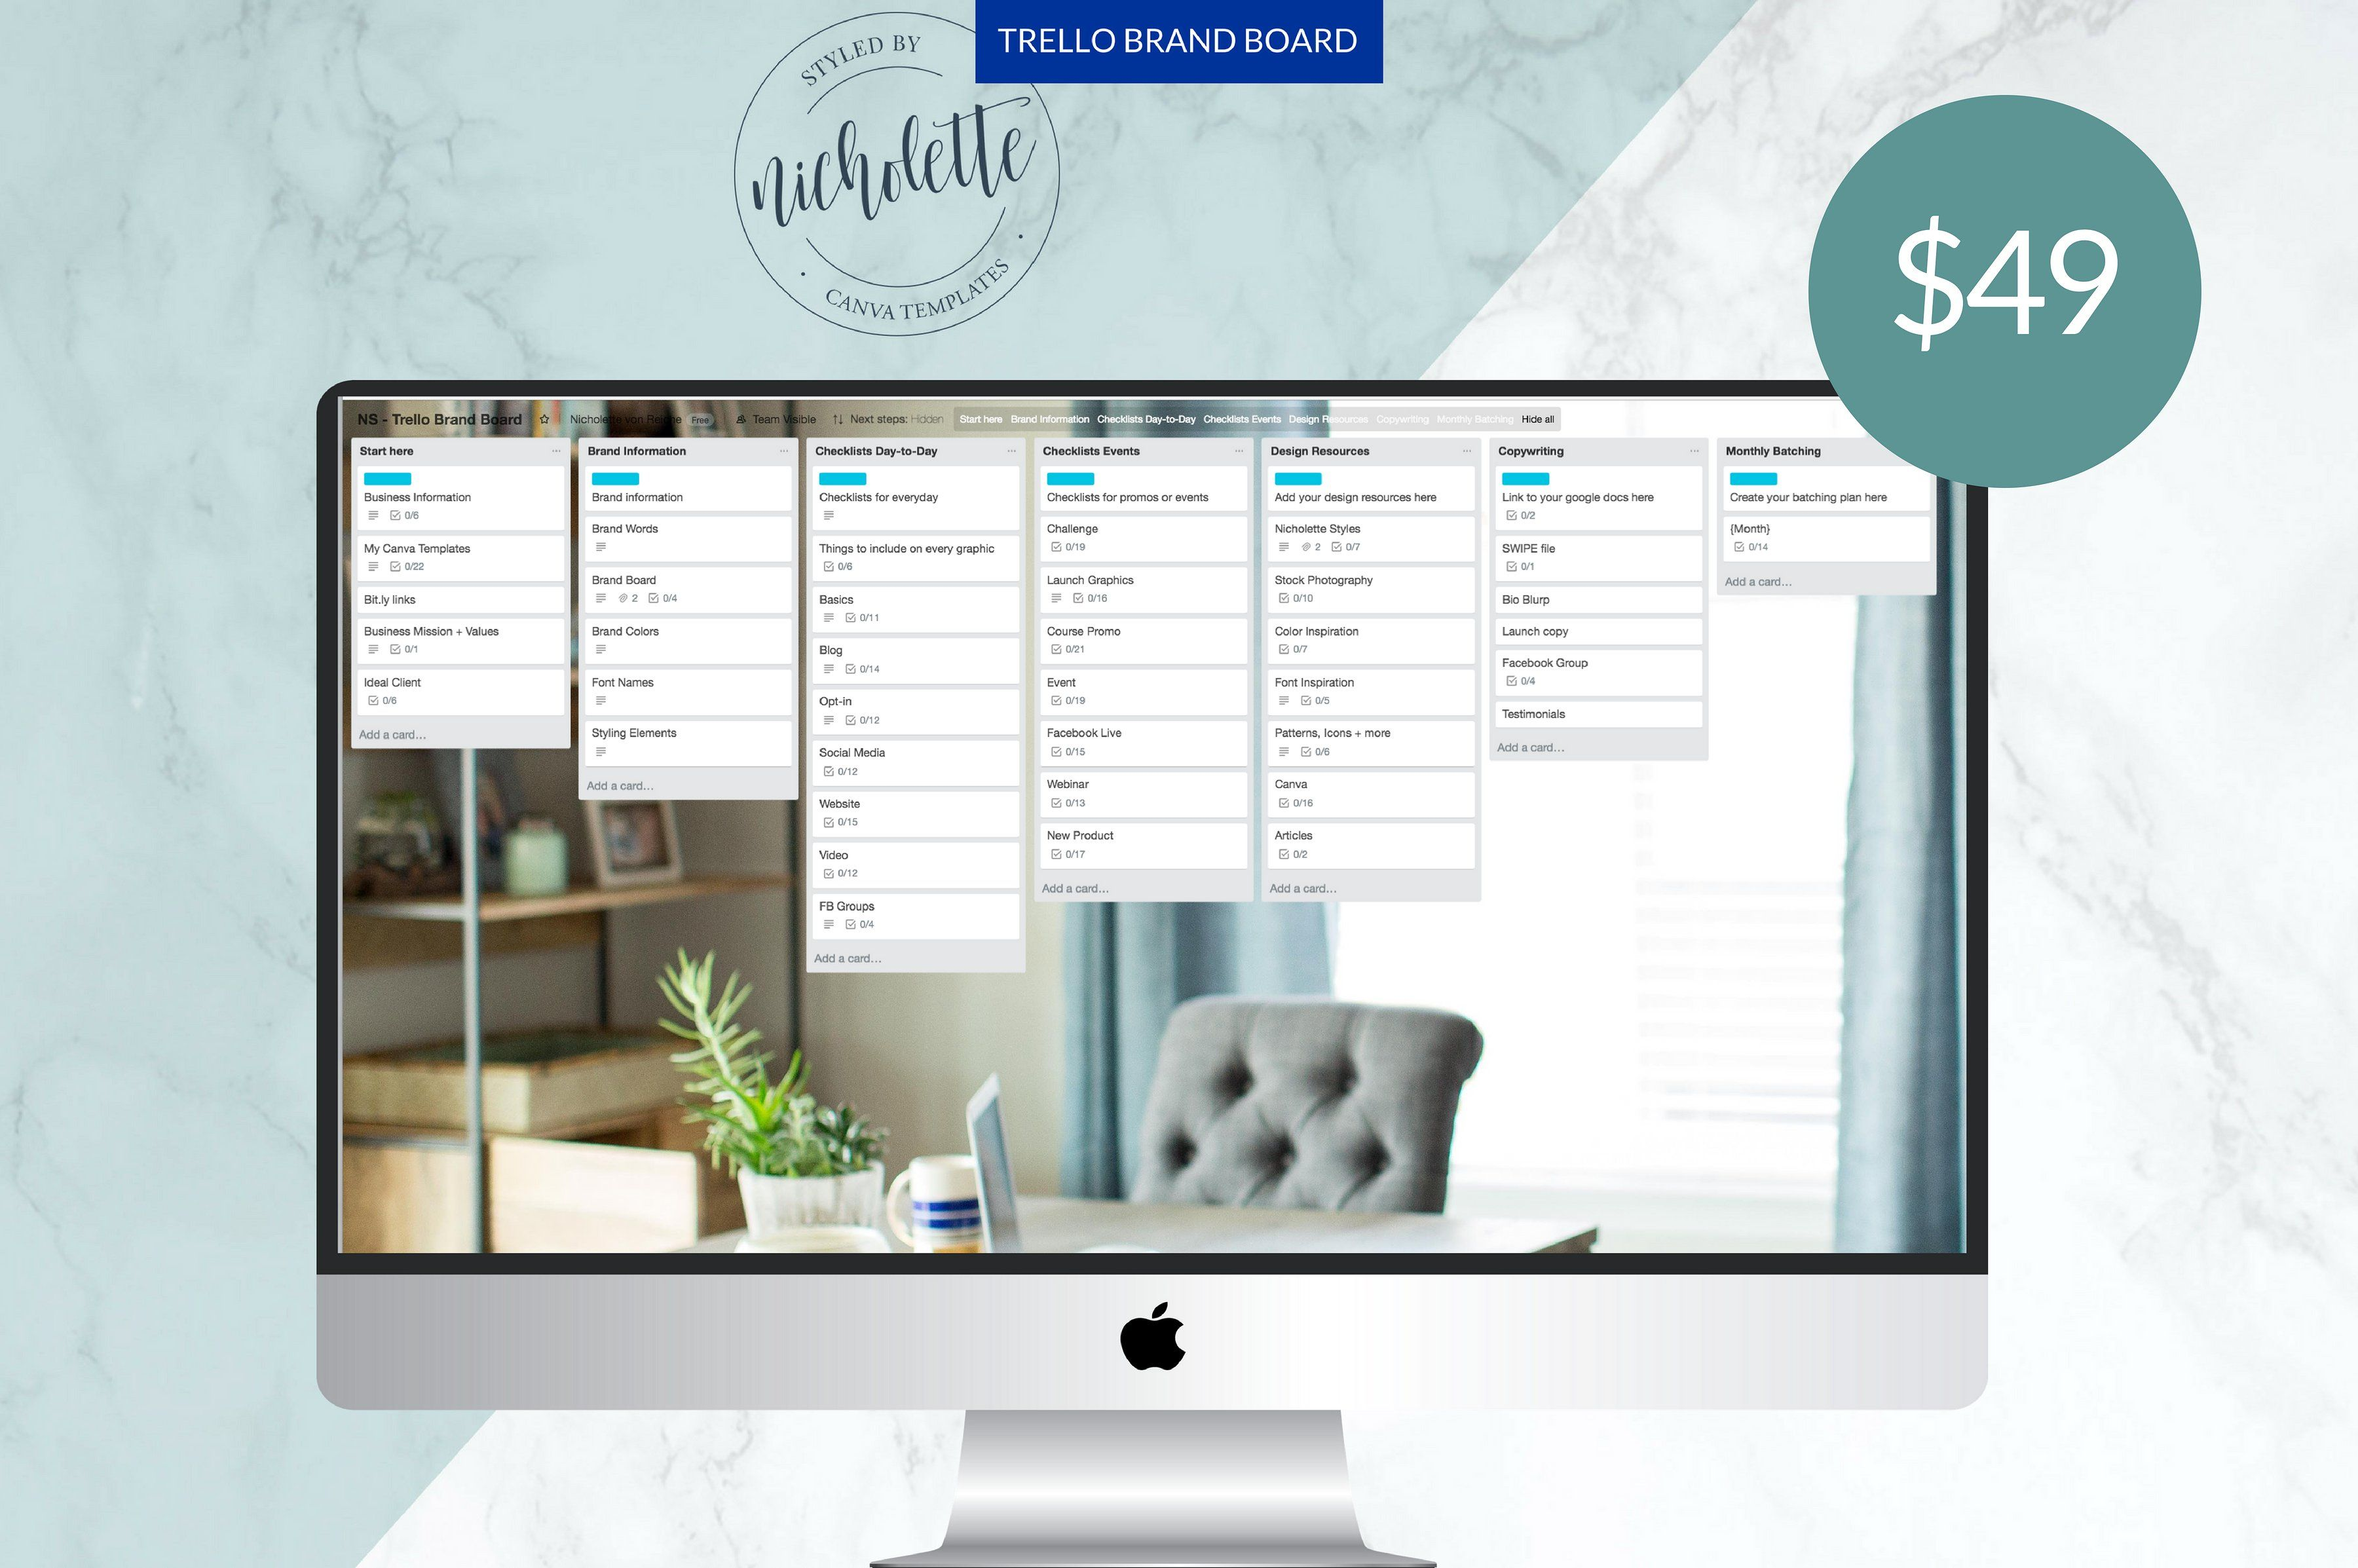 Trello Brand Board Tool Organizational Teaching Designed With